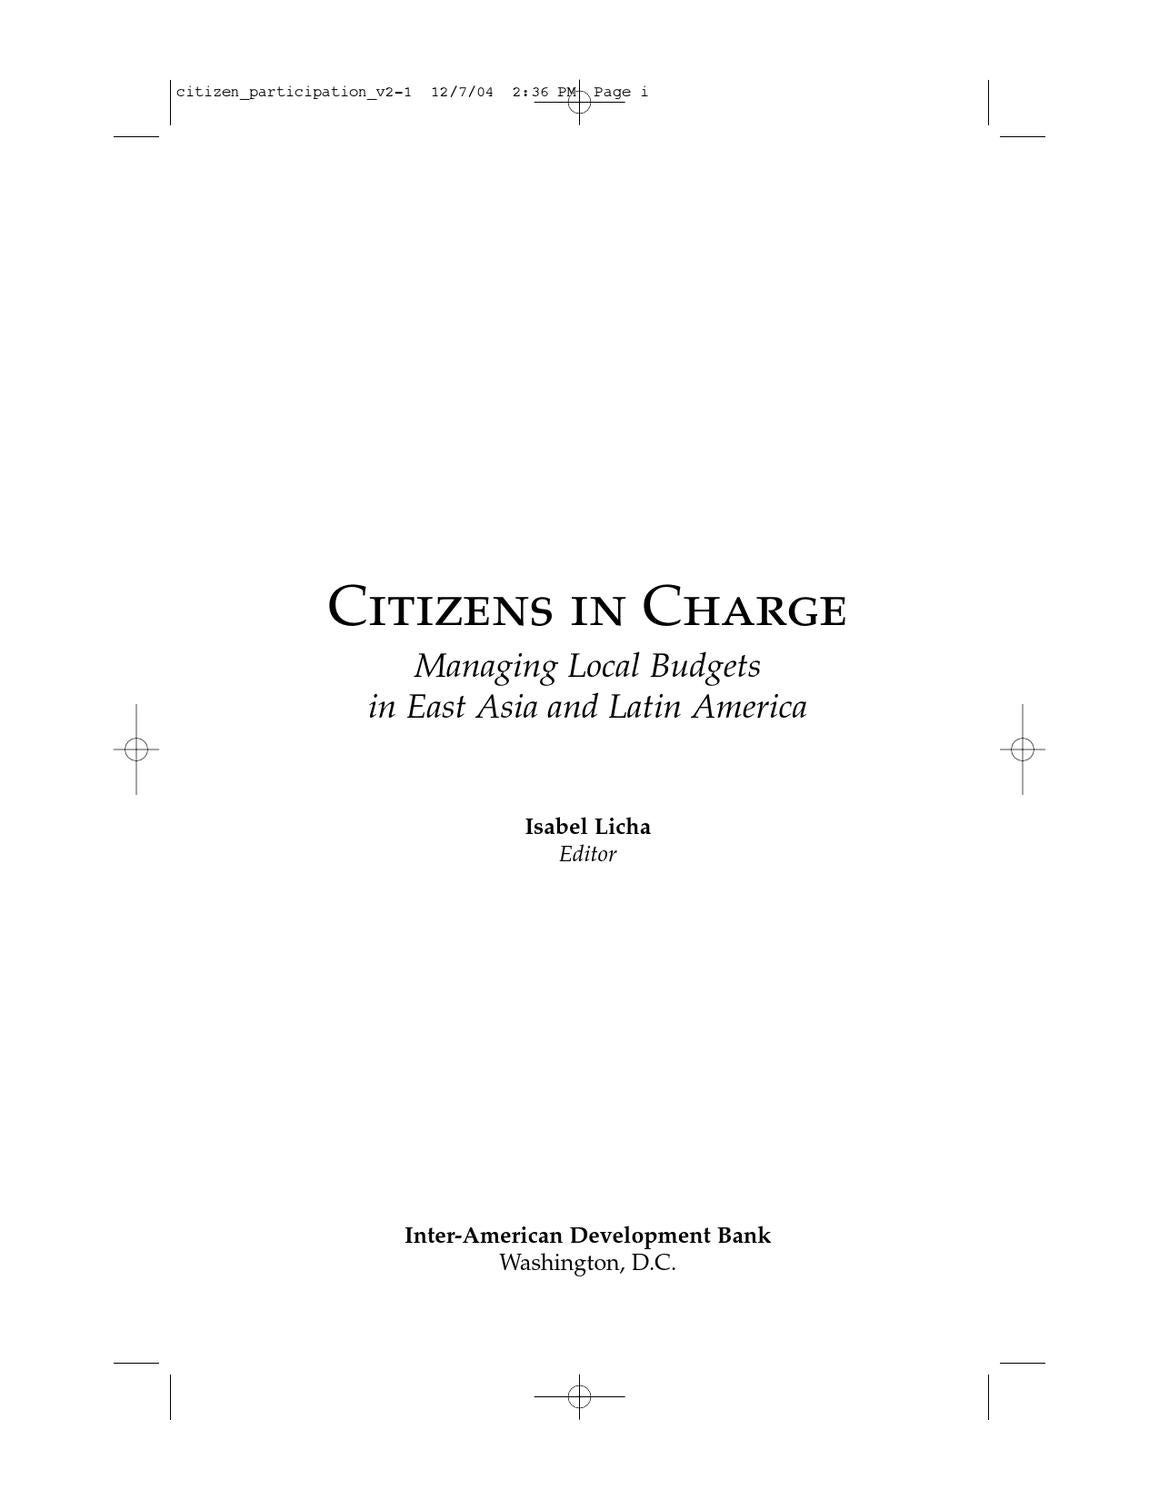 Citizens in Charge: Managing Local Budgets in East Asia and